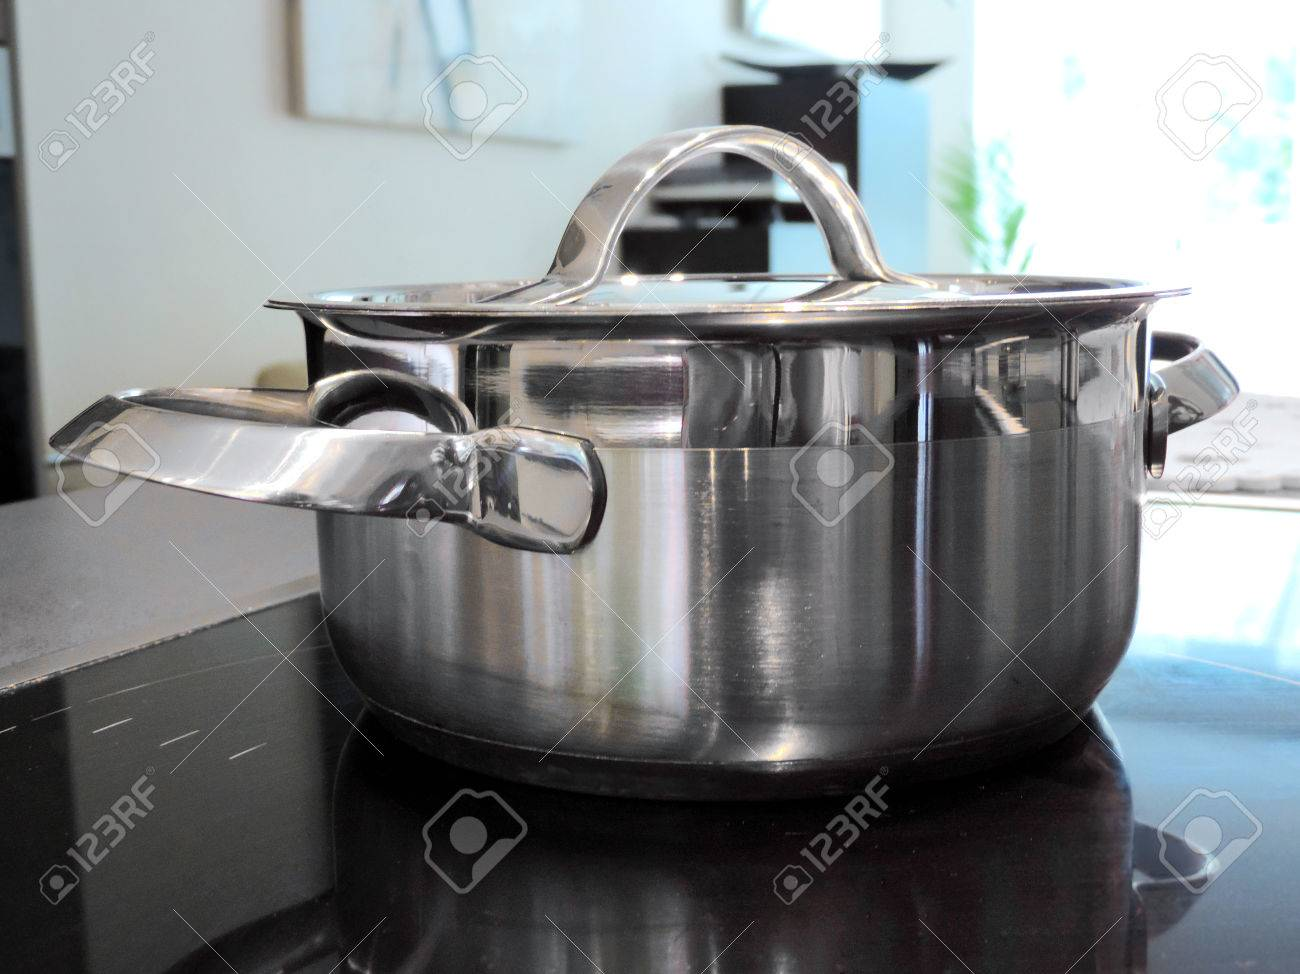 Cooking Pot On A Glass Ceramic Stove Top Stock Photo Picture And Royalty Free Image Image 64052084